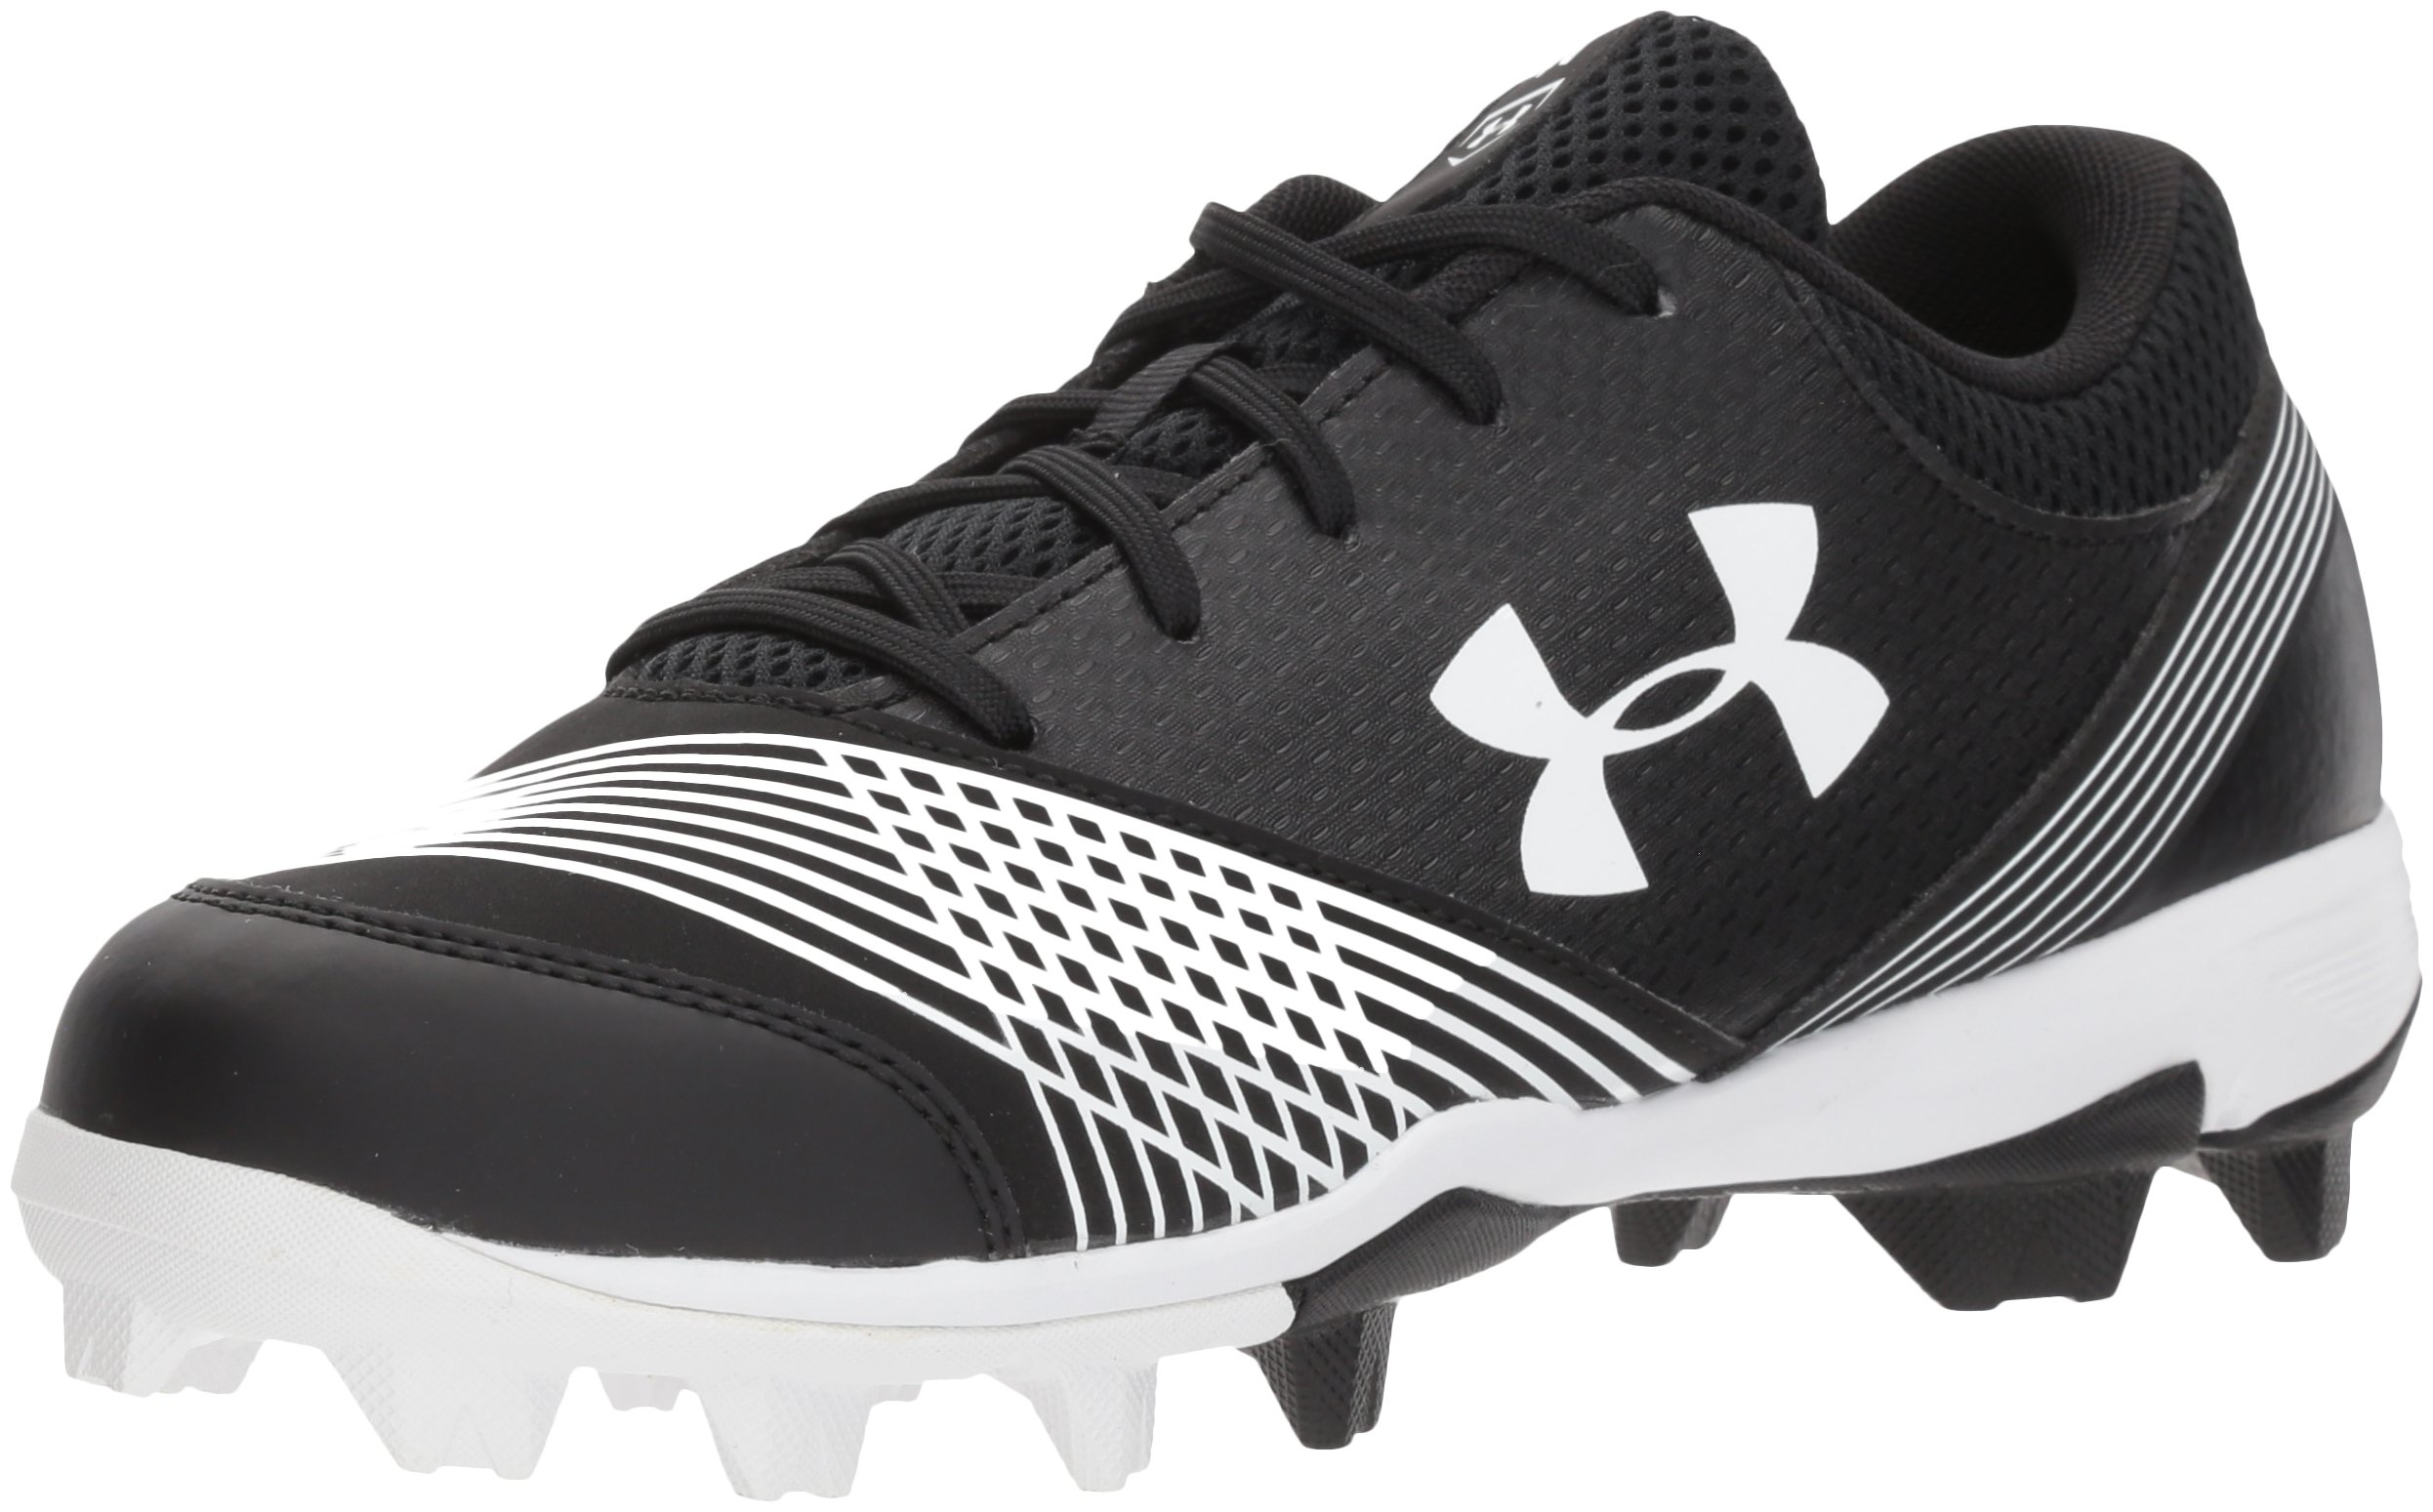 Under Armour Women's Glyde RM Softball Shoe, (011)/Black, 5.5 by Under Armour